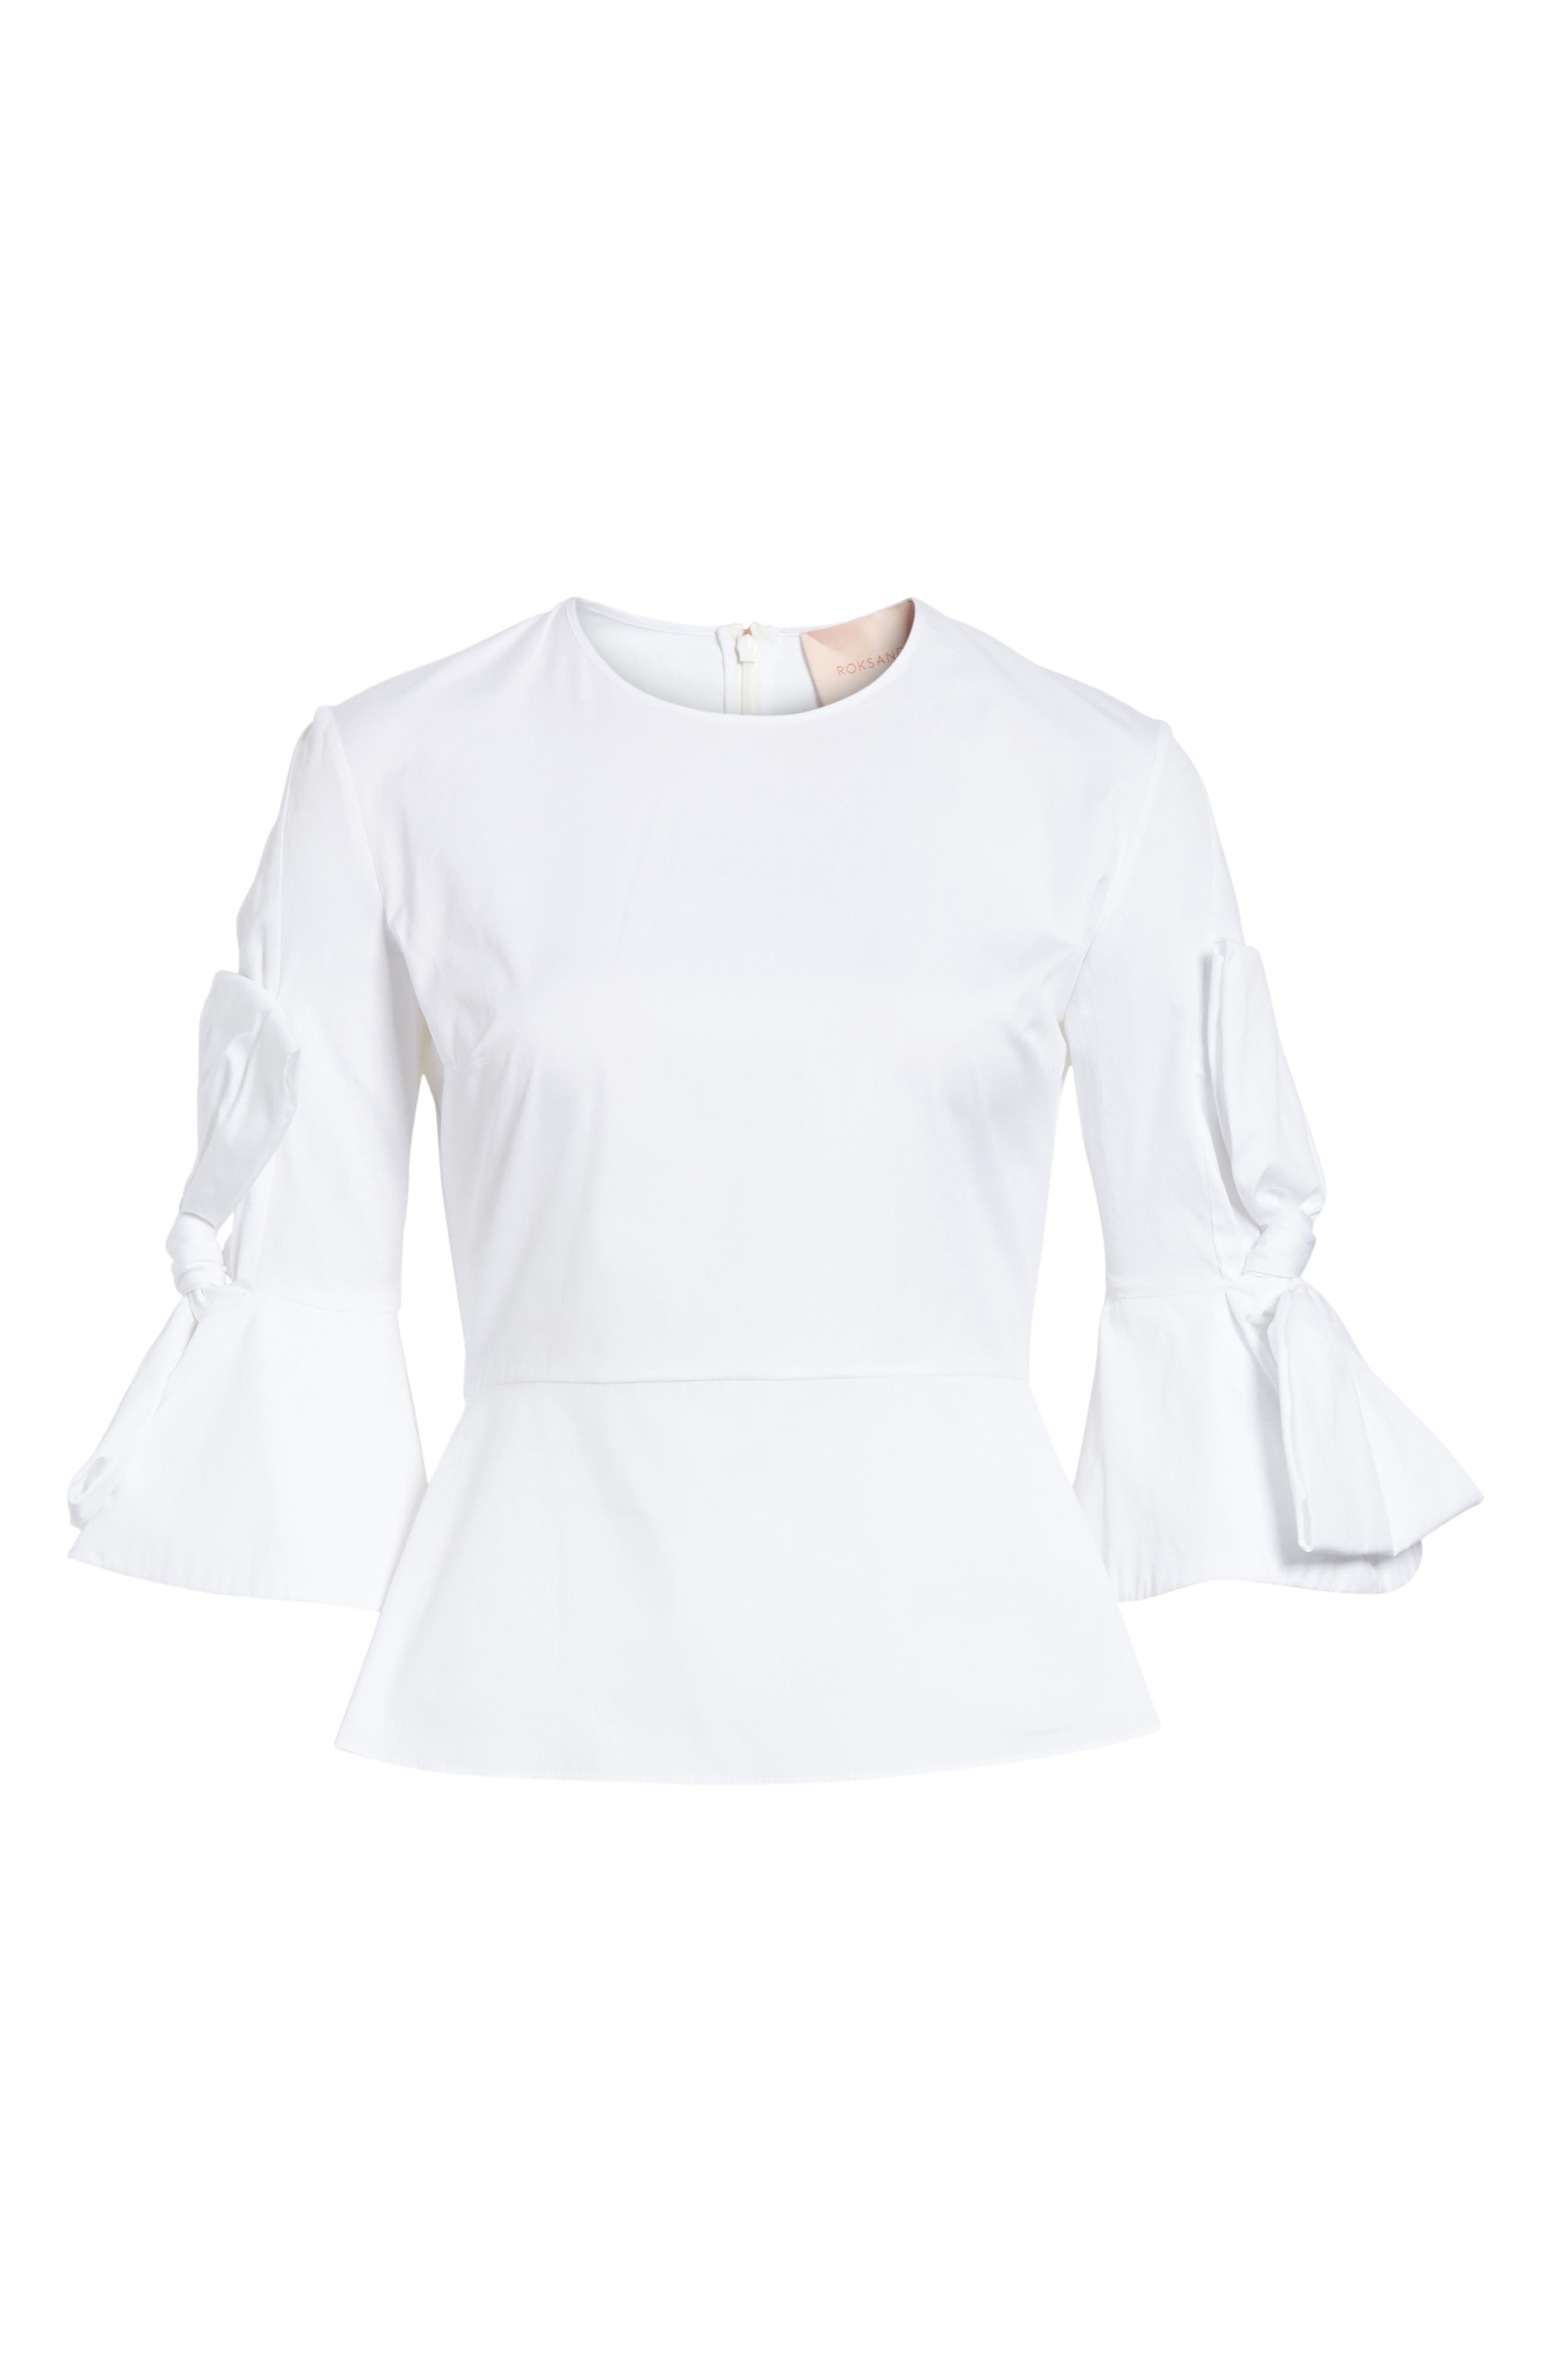 Kemi Top,                             Alternate thumbnail 6, color,                             White